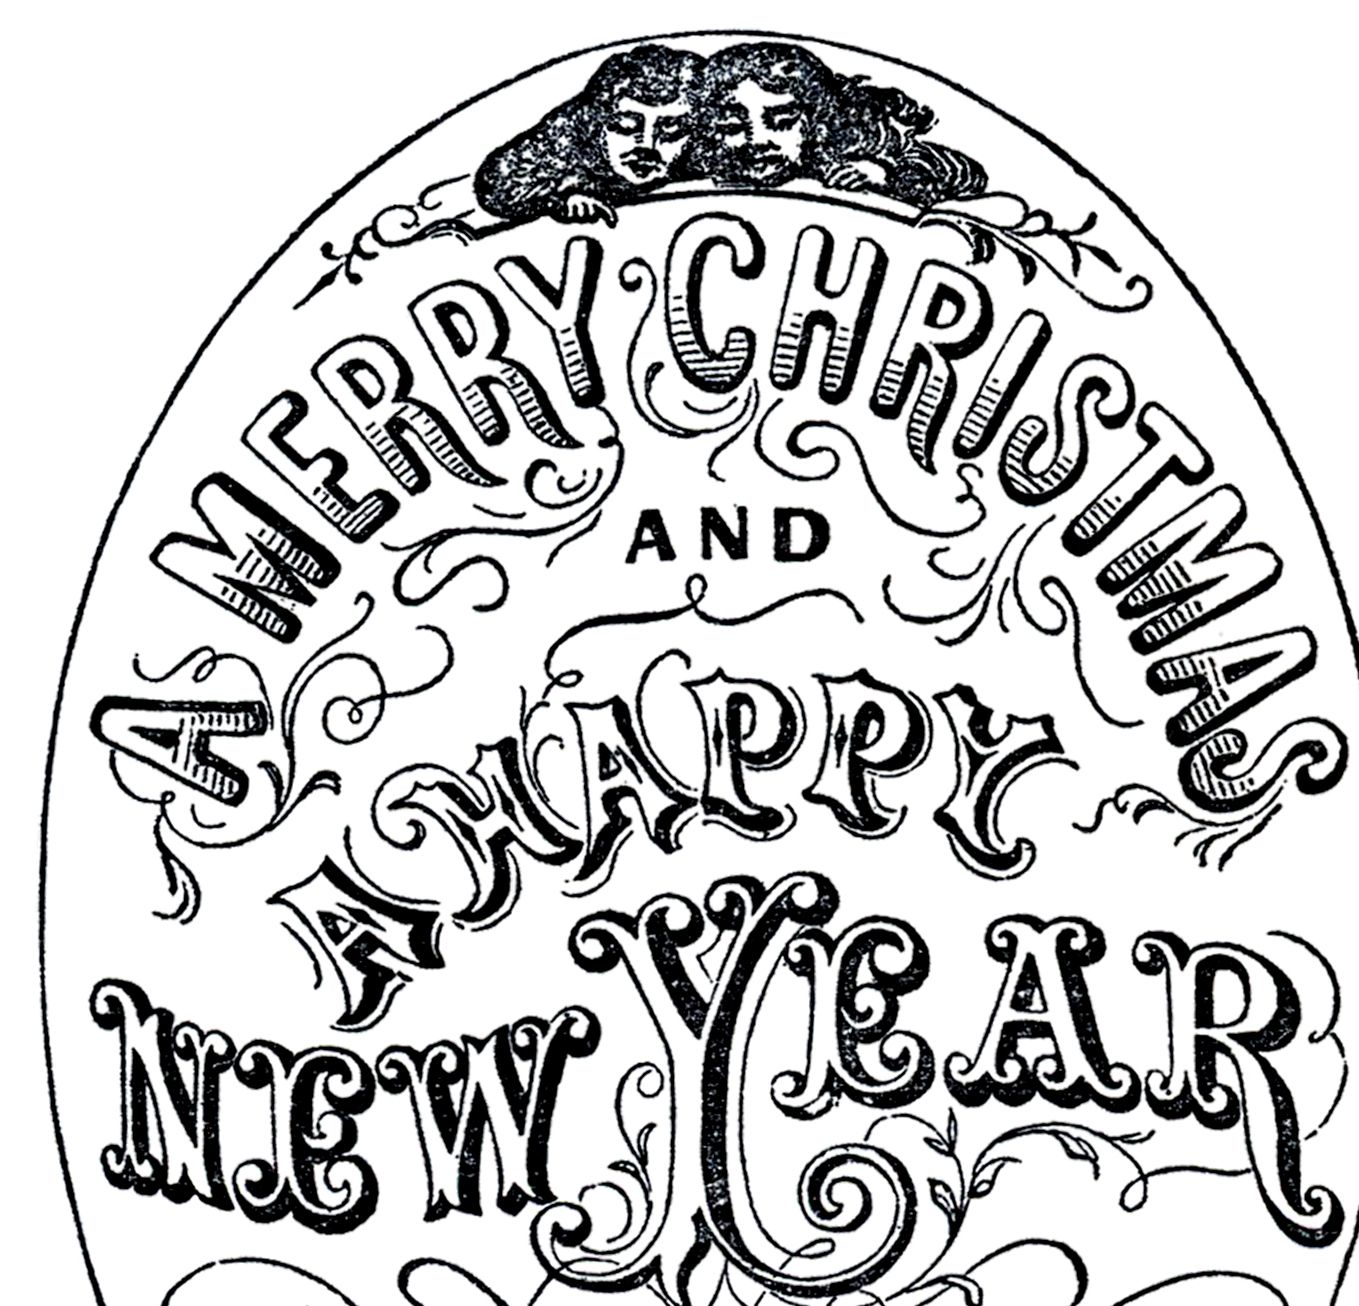 Old-Time-Christmas-Typography-thm-GraphicsFairy.jpg (1359×1306)